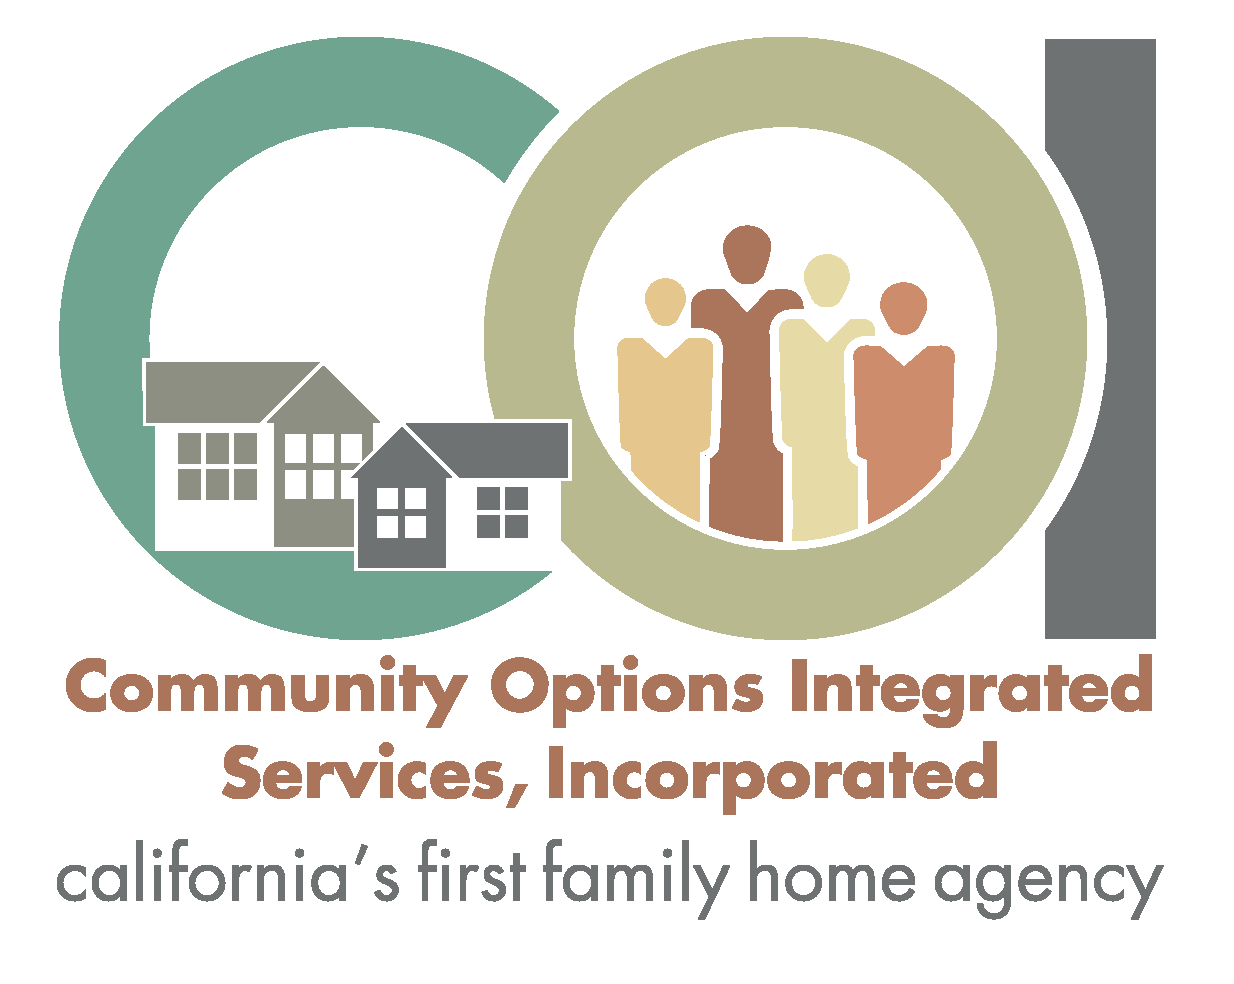 Community Options Integrated Services